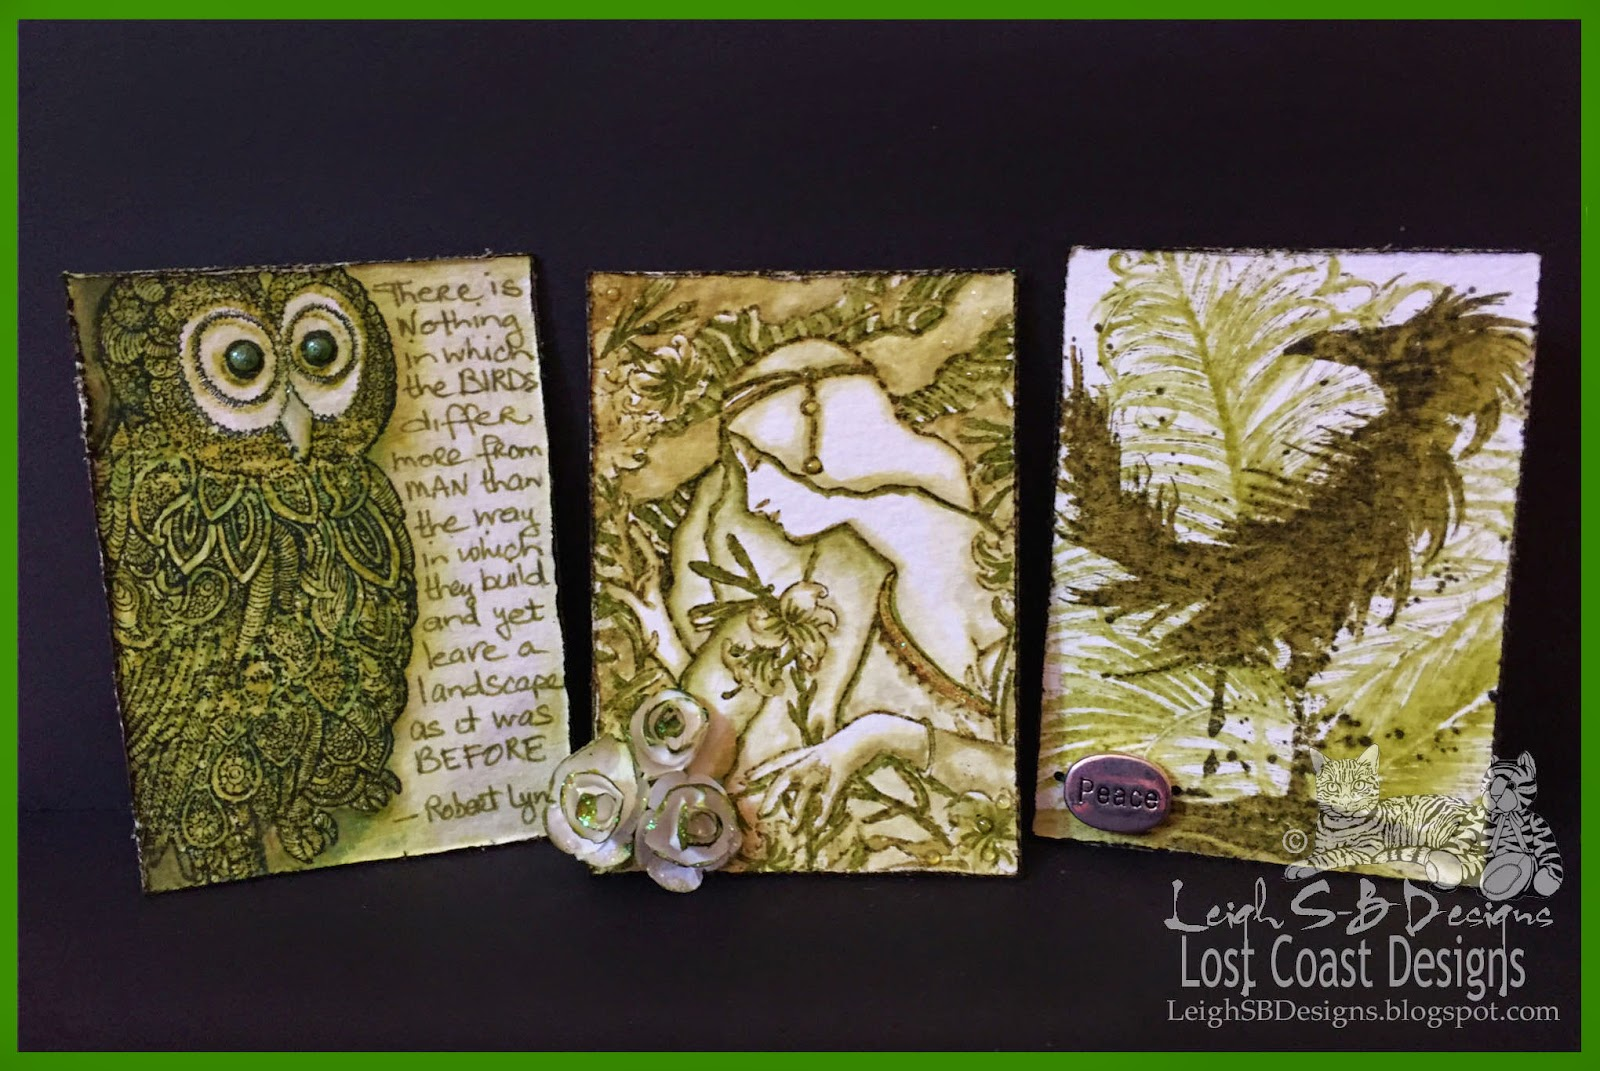 http://leighsbdesigns.blogspot.com/2015/03/shades-of-green-atcs-50-shades-of-green.html